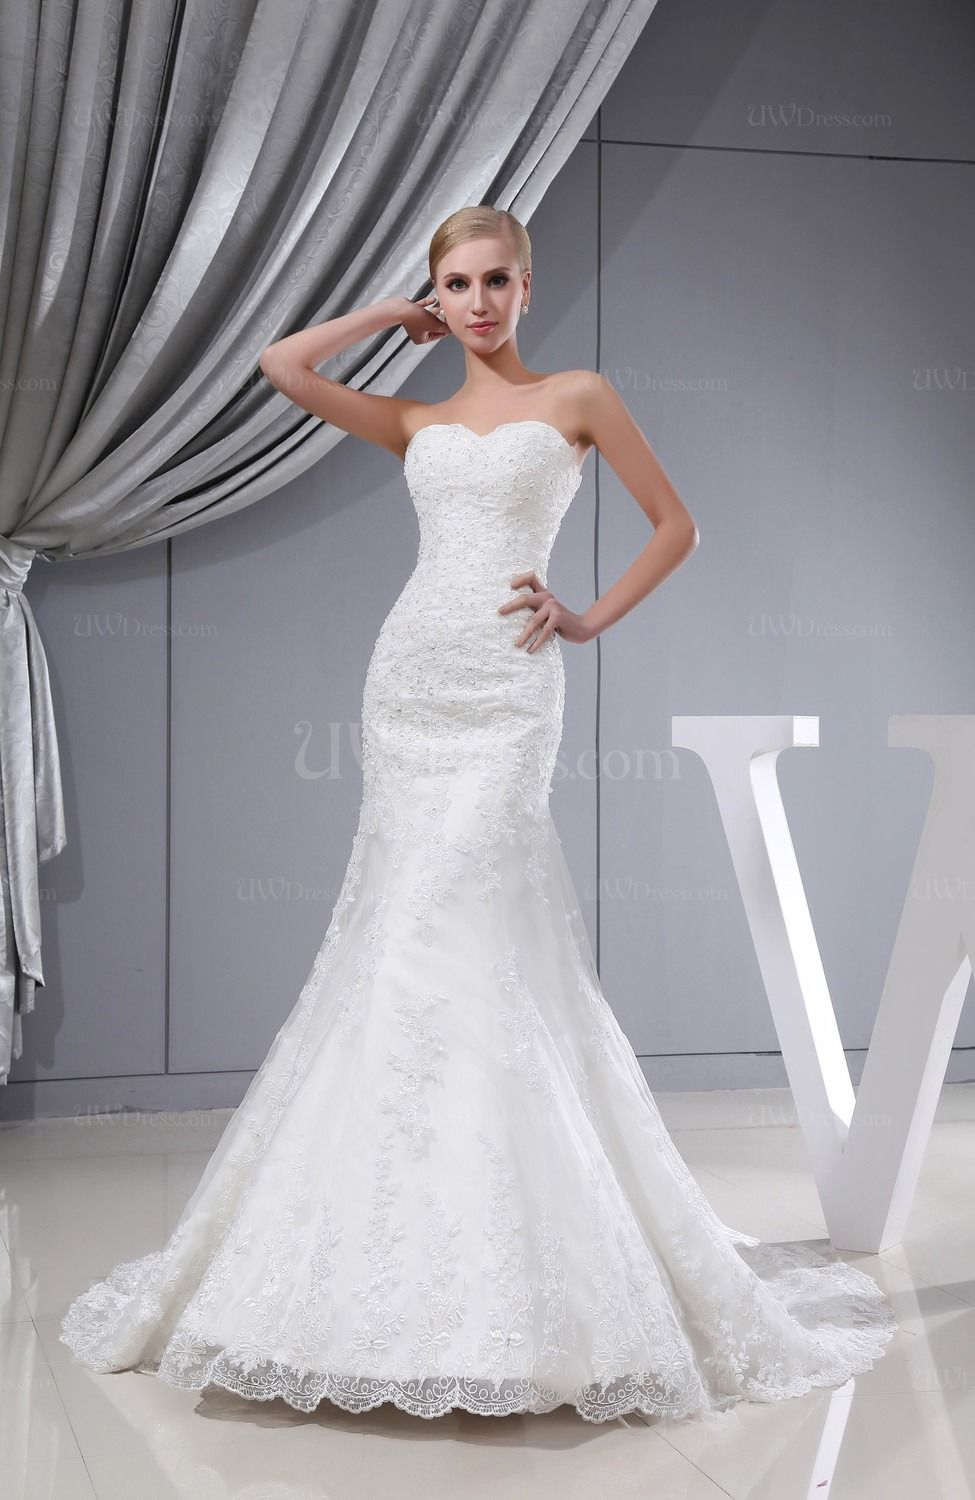 mermaid wedding gowns with cathedral trains Mermaid